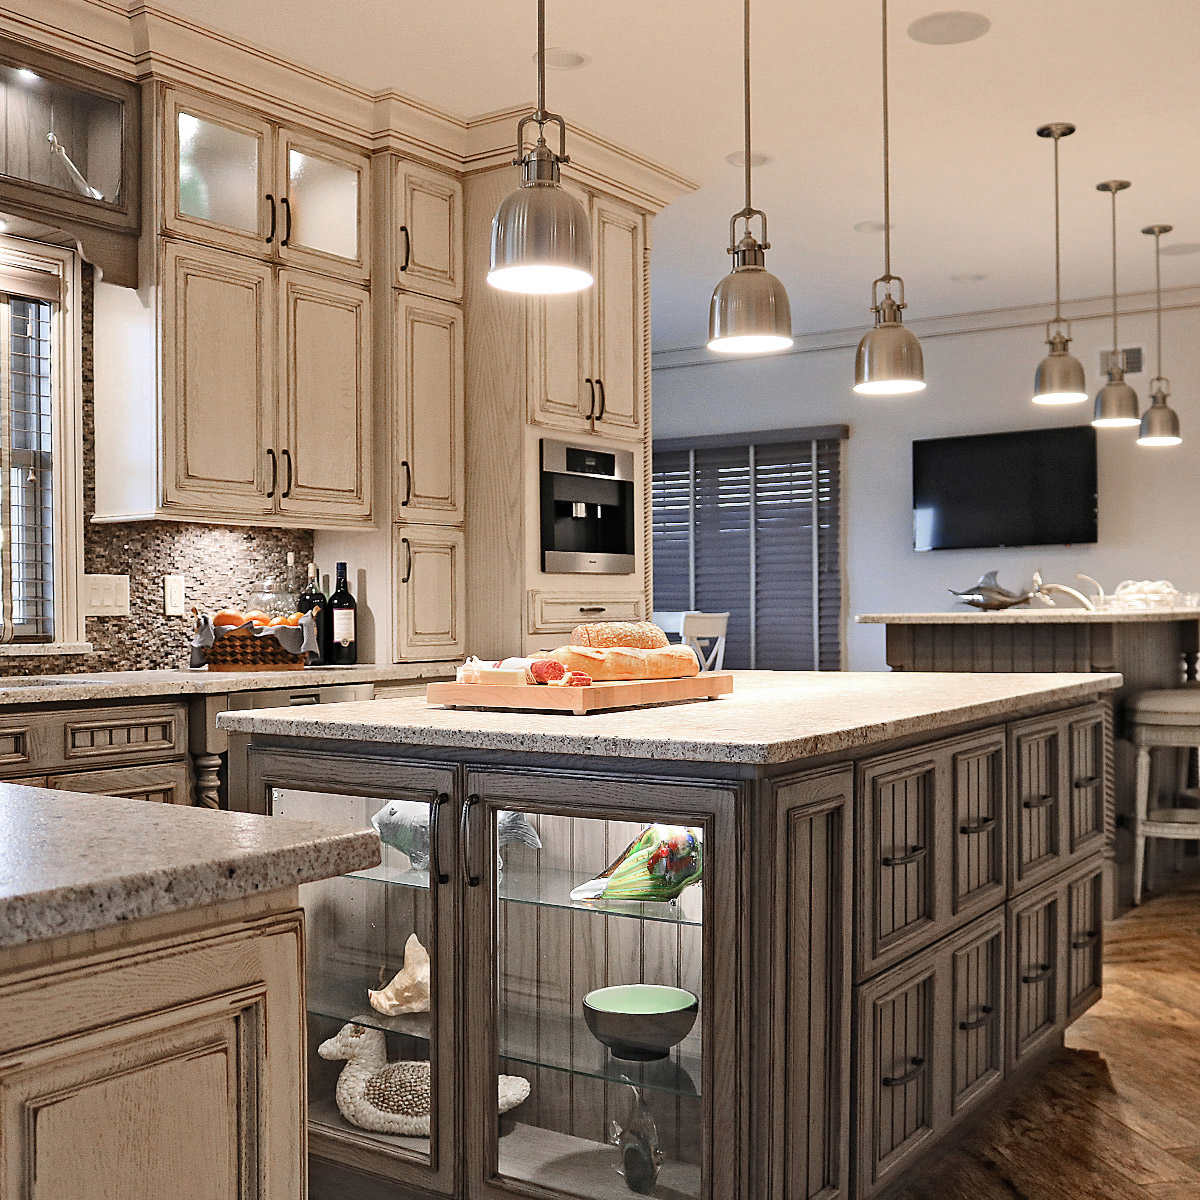 Tuscan Kitchen Cabinets Fullcustom Cabinetstuscan Hills Kitchens & Bathsbrships In